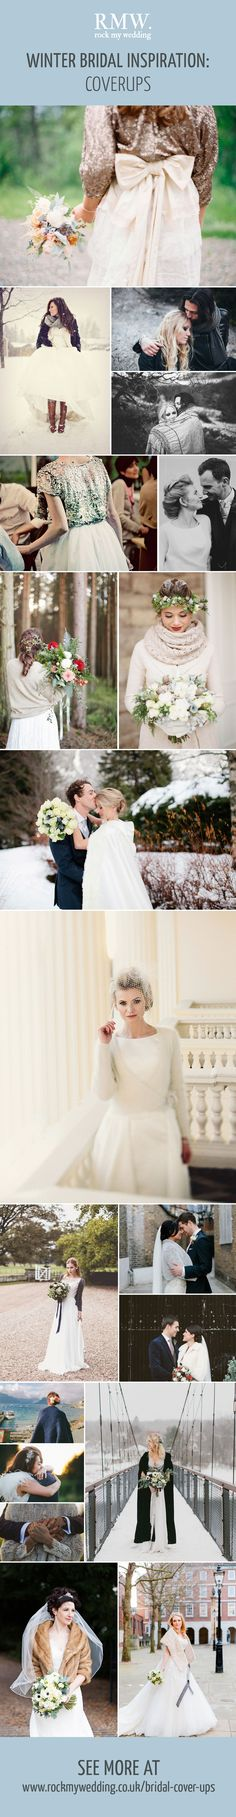 Bridal Cover Up Inspiration | Winter Bridal Fashion | Wraps | Shawls | Faux Fur Jackets | Sequin Cardigans | http://www.rockmywedding.co.uk/bridal-cover-ups/